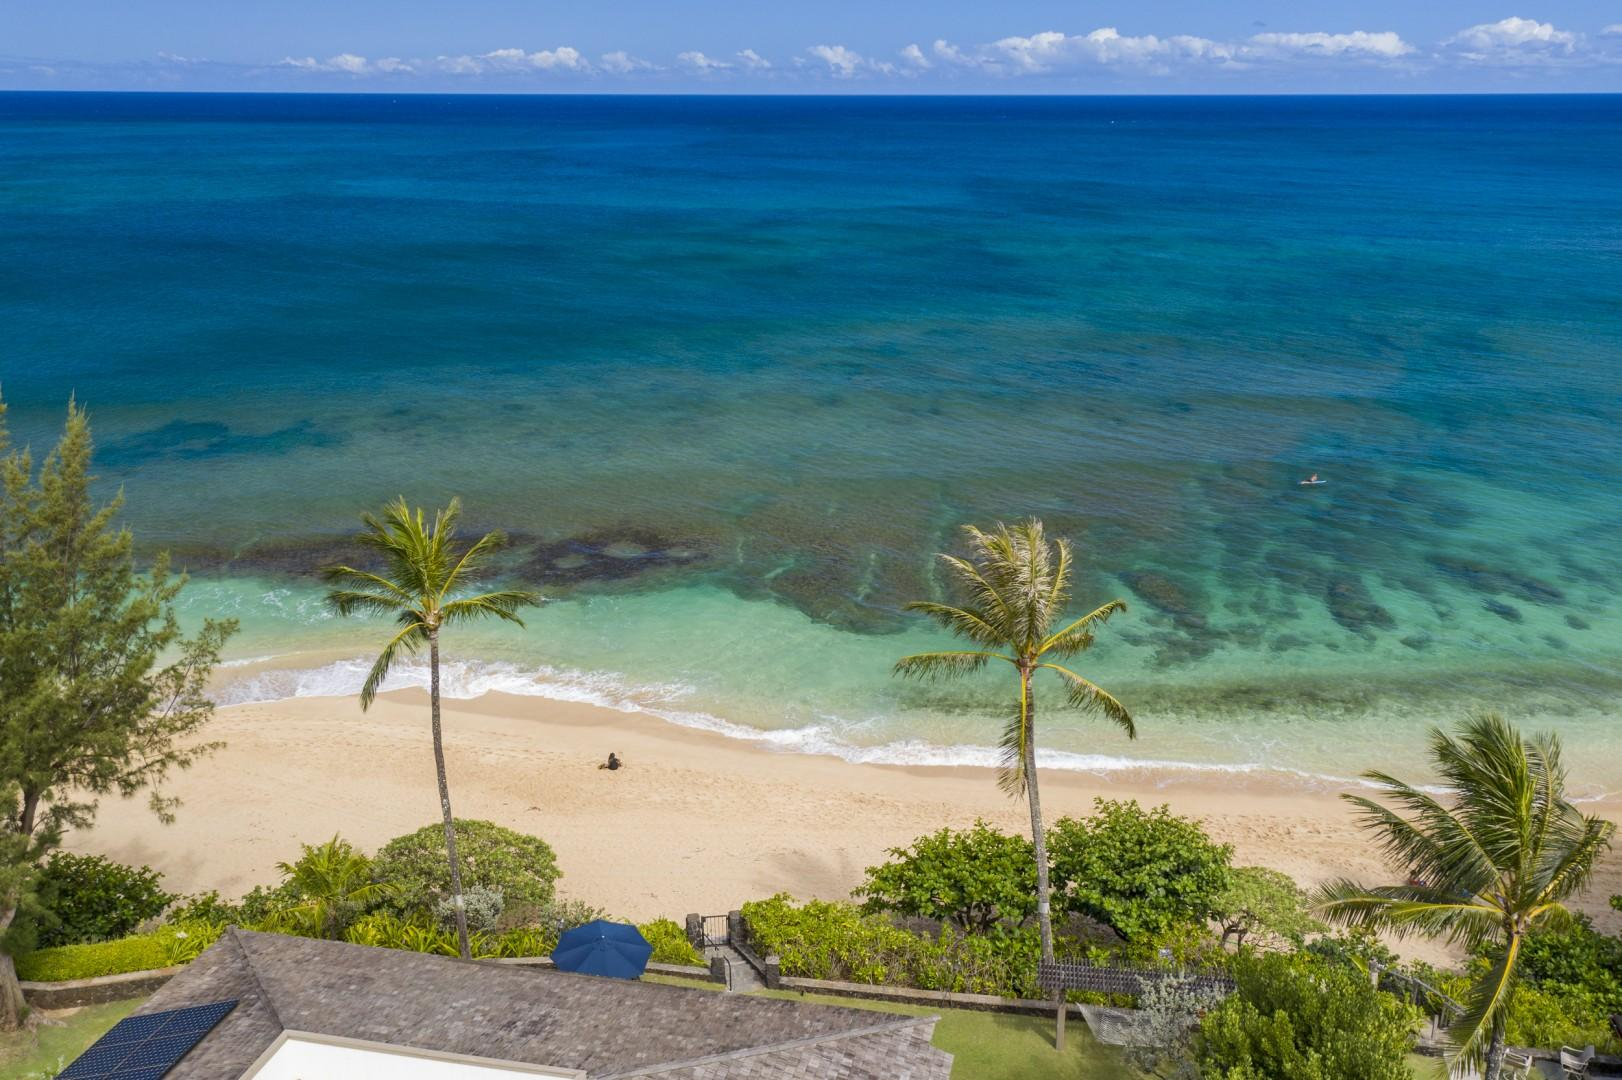 Gorgeous summer ocean lends to snorkeling and fishing the days away.